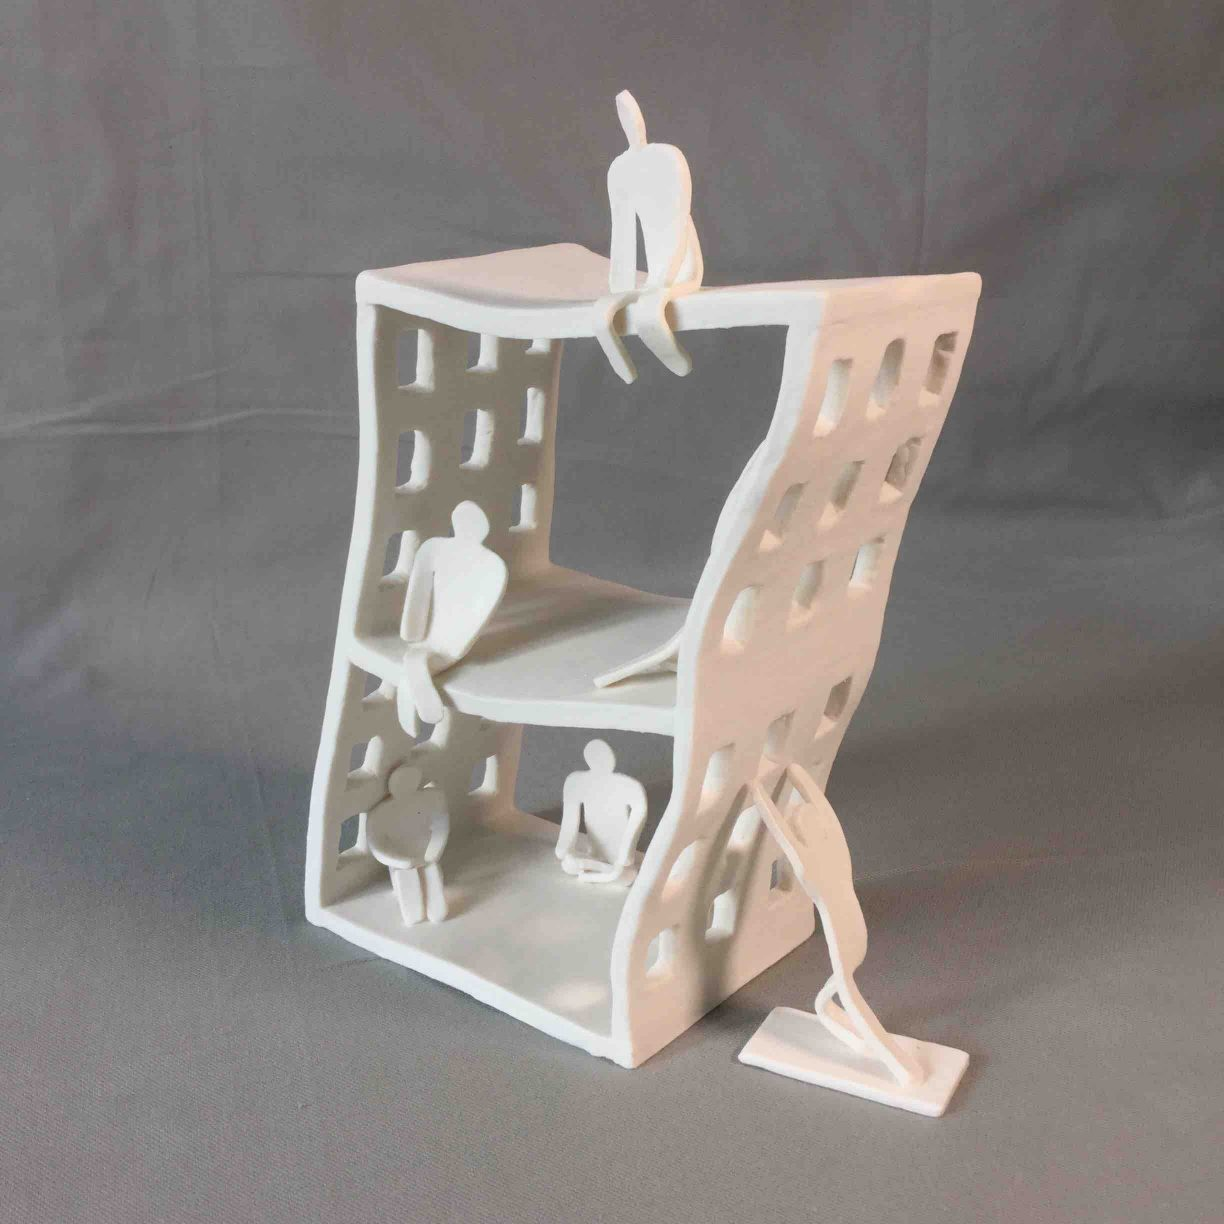 15-cat-trochu-ceramic-rennes-immeuble-porcelainmen 4